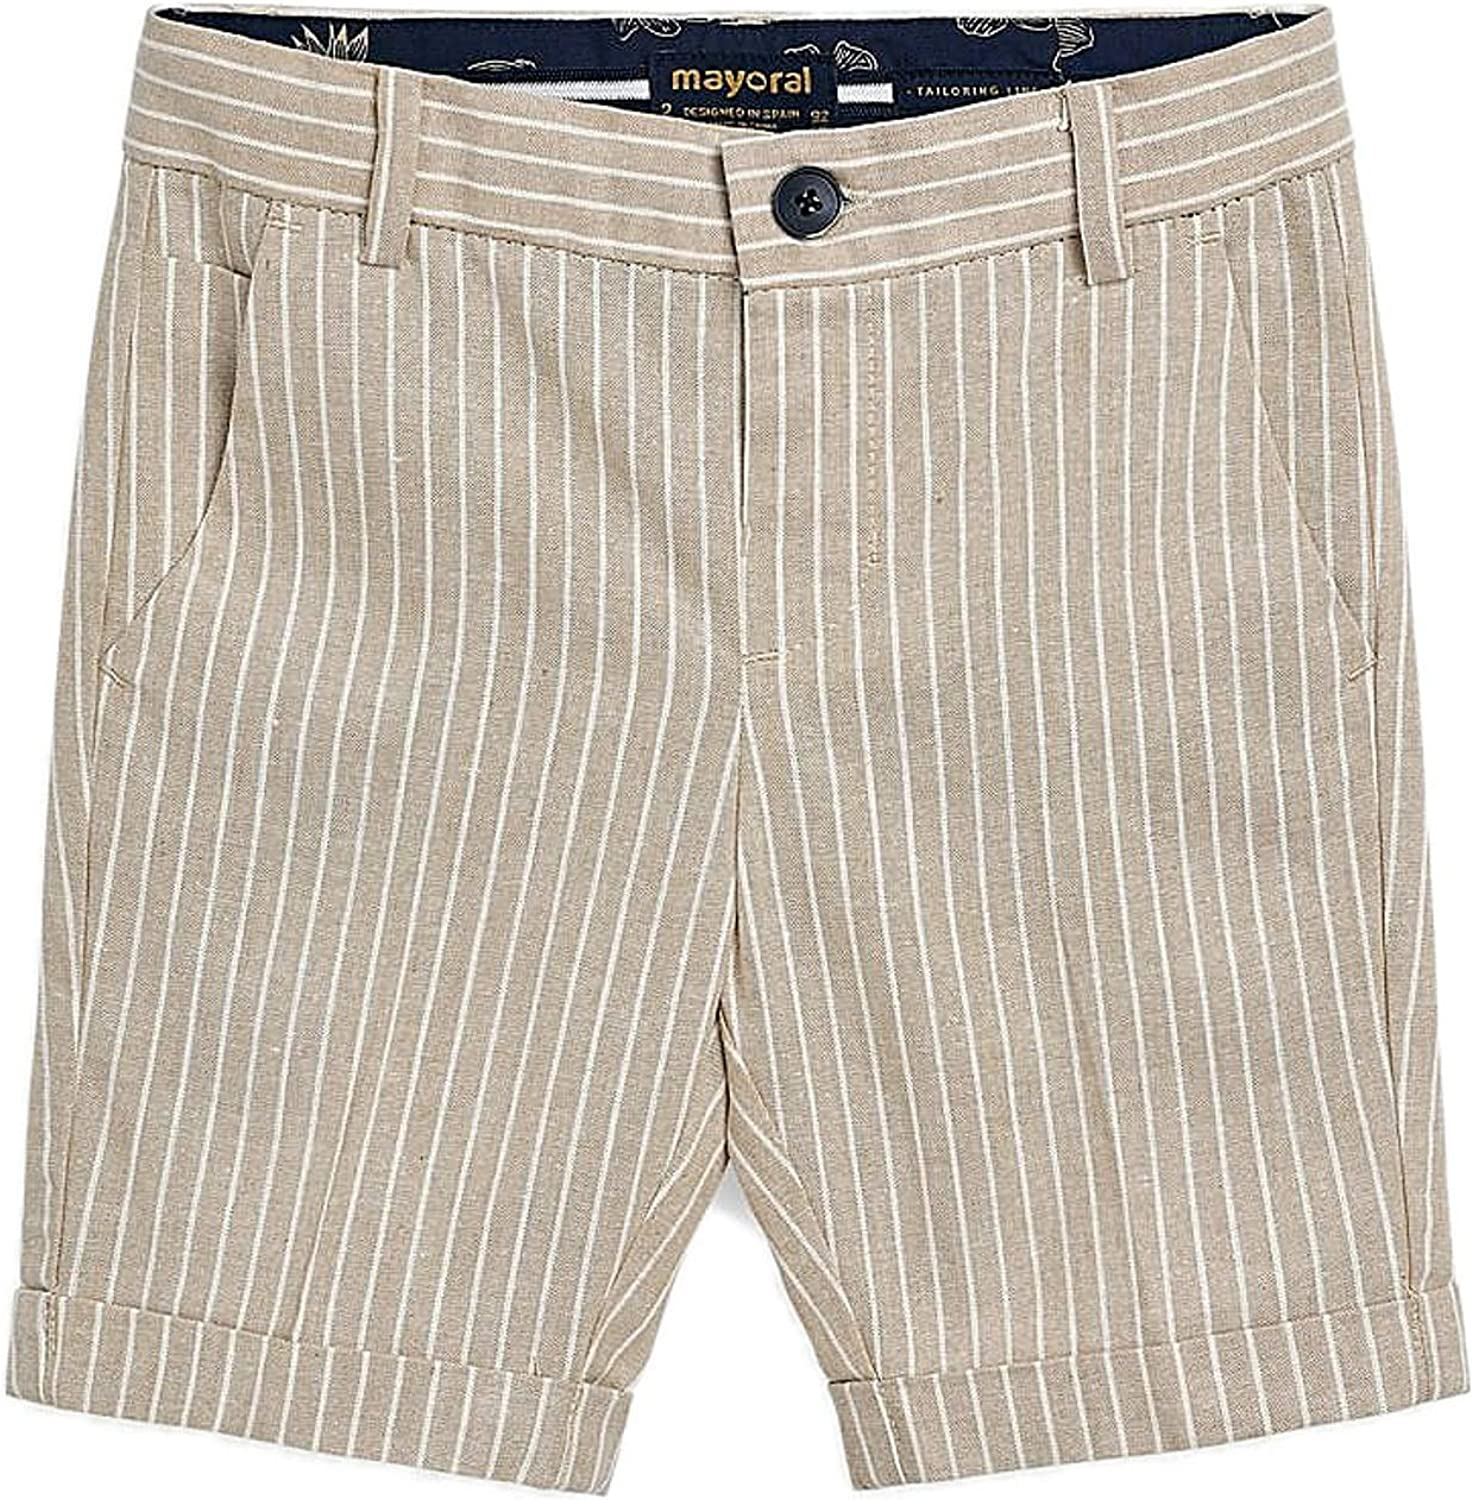 Mayoral - Tailored Linen Shorts for Boys - 3253, Parchment